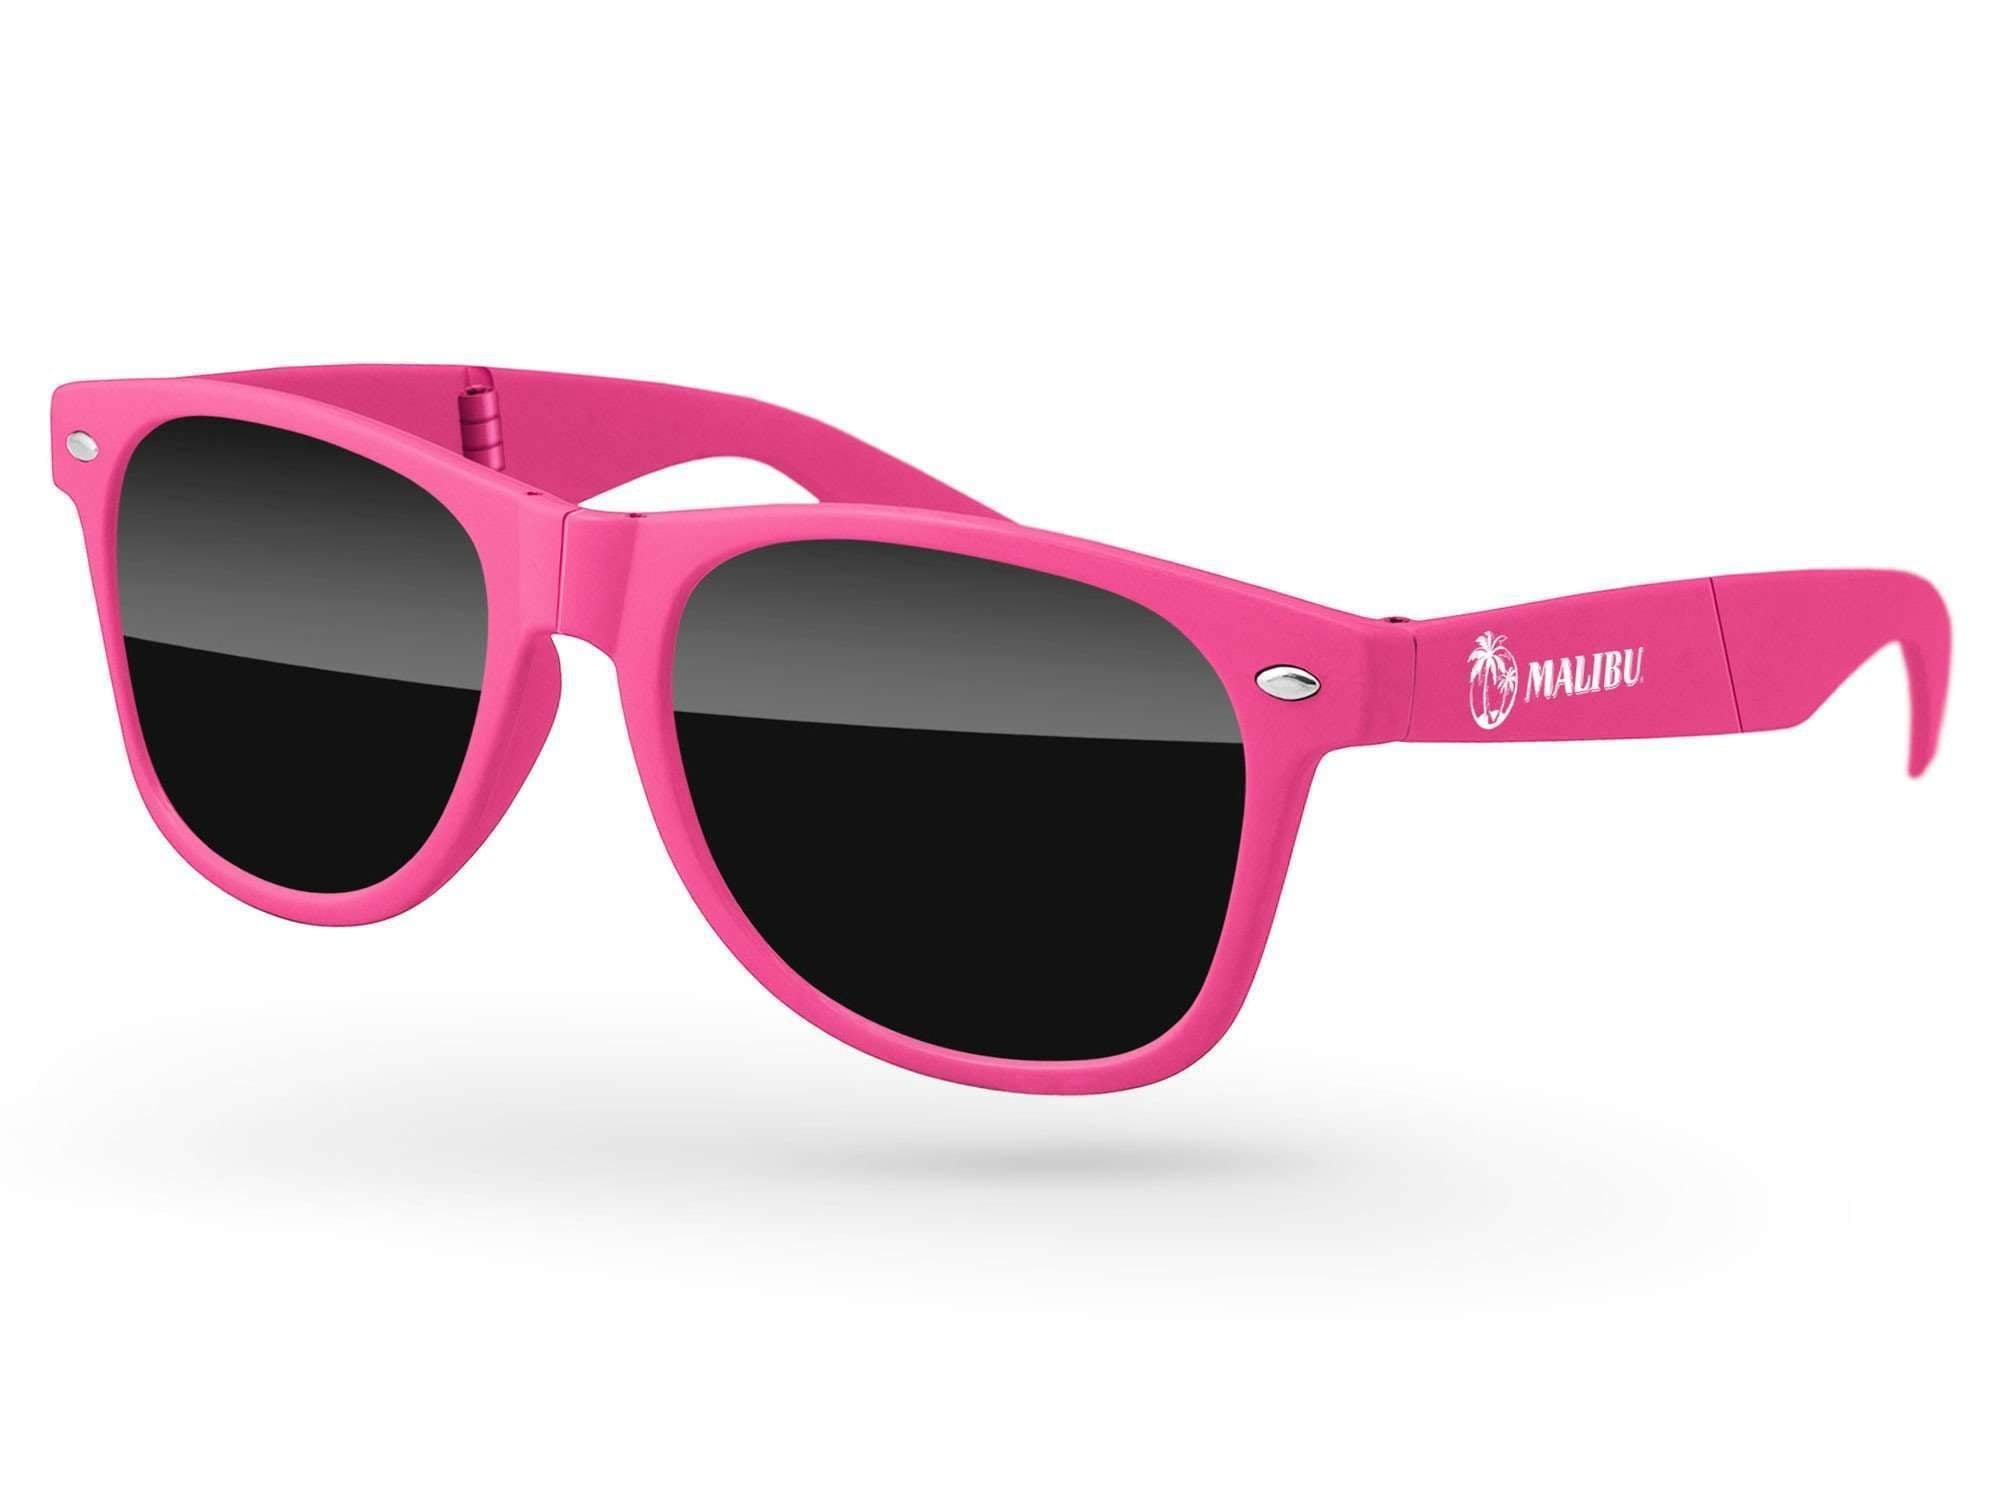 Food & Beverage - Foldable Retro Promotional Sunglasses w/ 1-color temple imprint